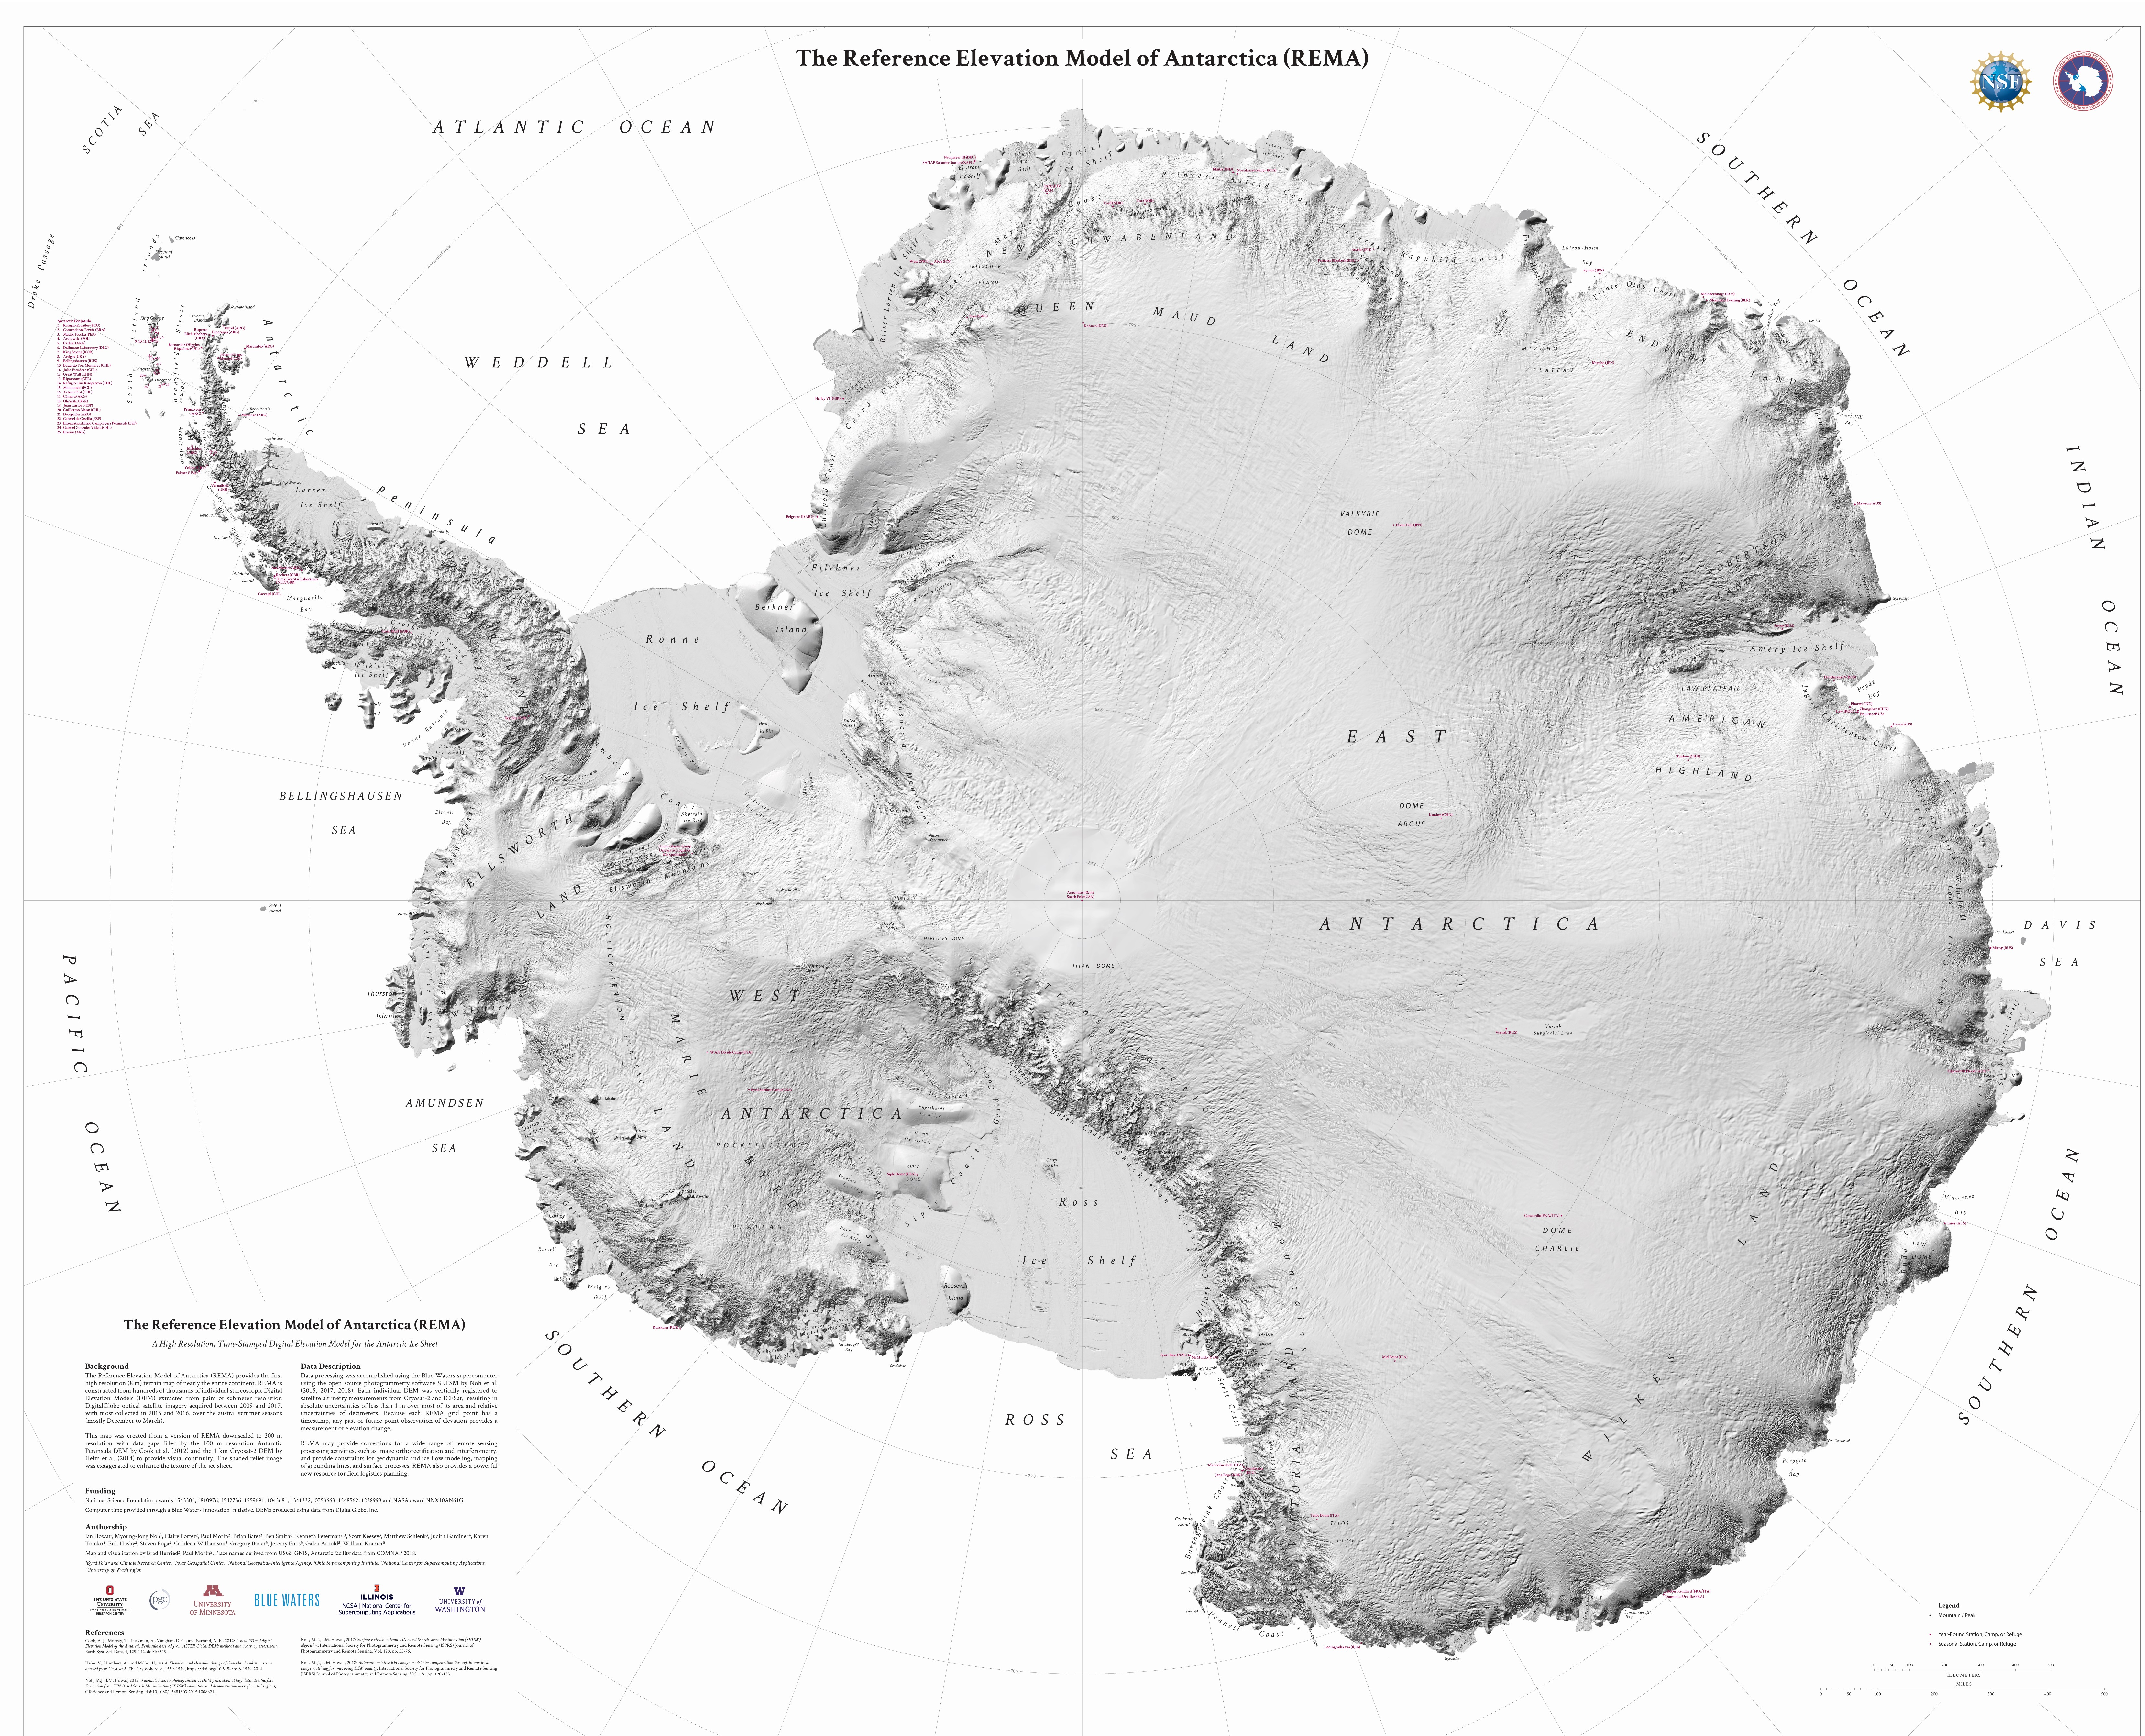 New mapping of Antarctica